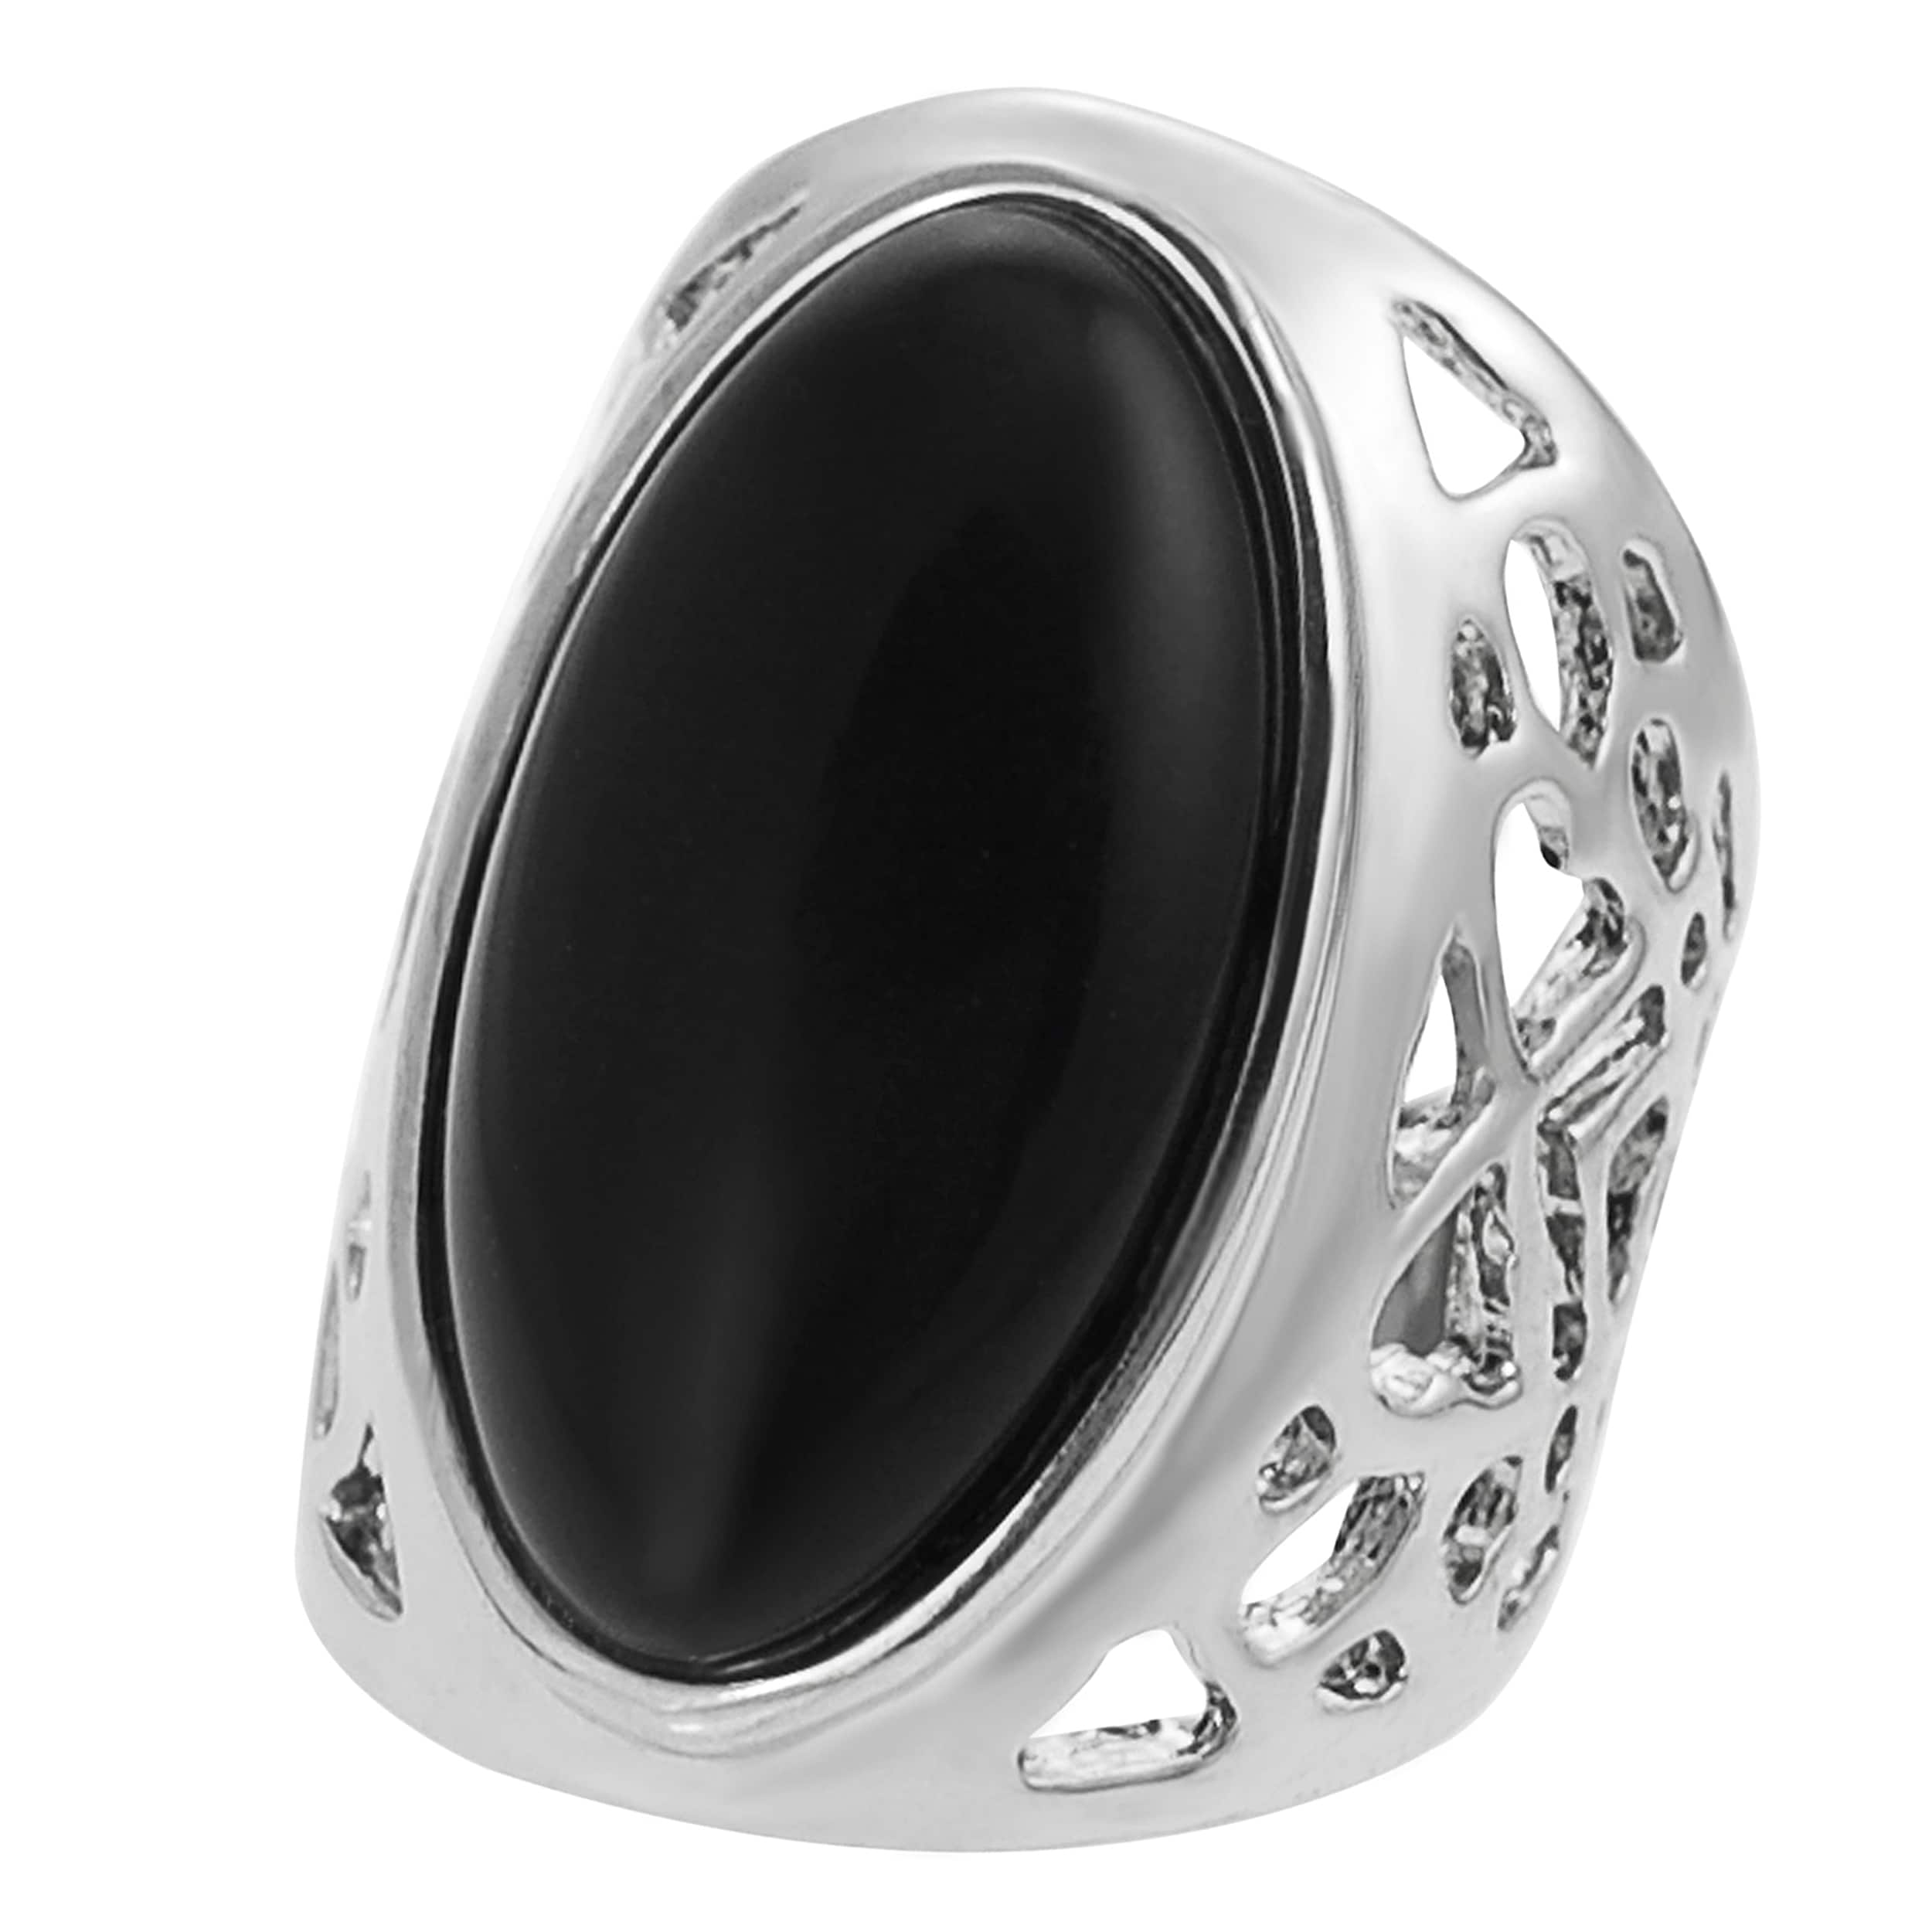 Journee Collection Rhodium-plated Oval-shaped Black Enamel Dome Ring